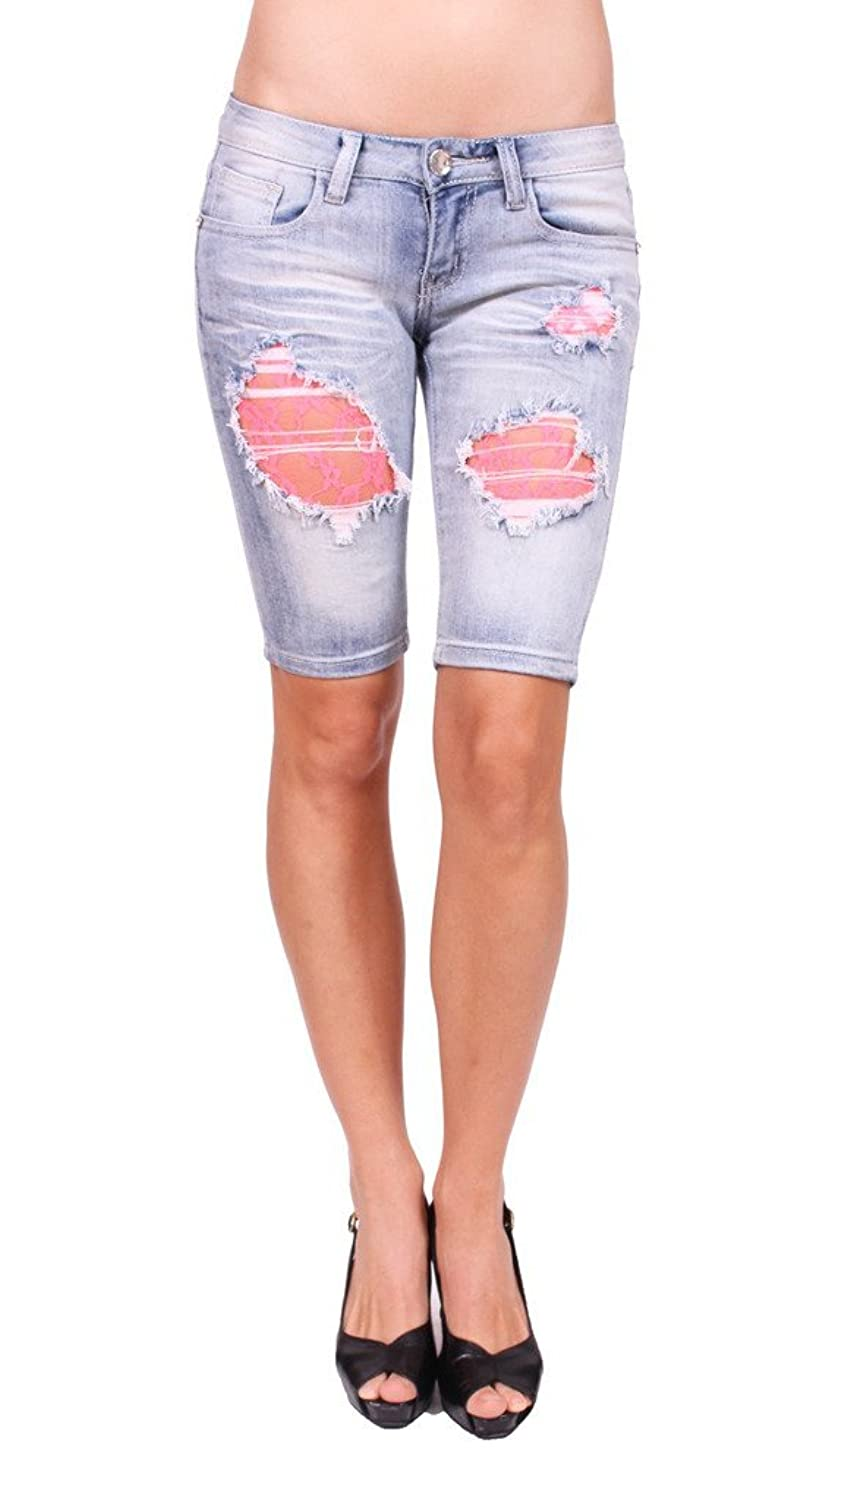 Machine Jeans Women Distressed Bermuda Jeans with Pink Lace